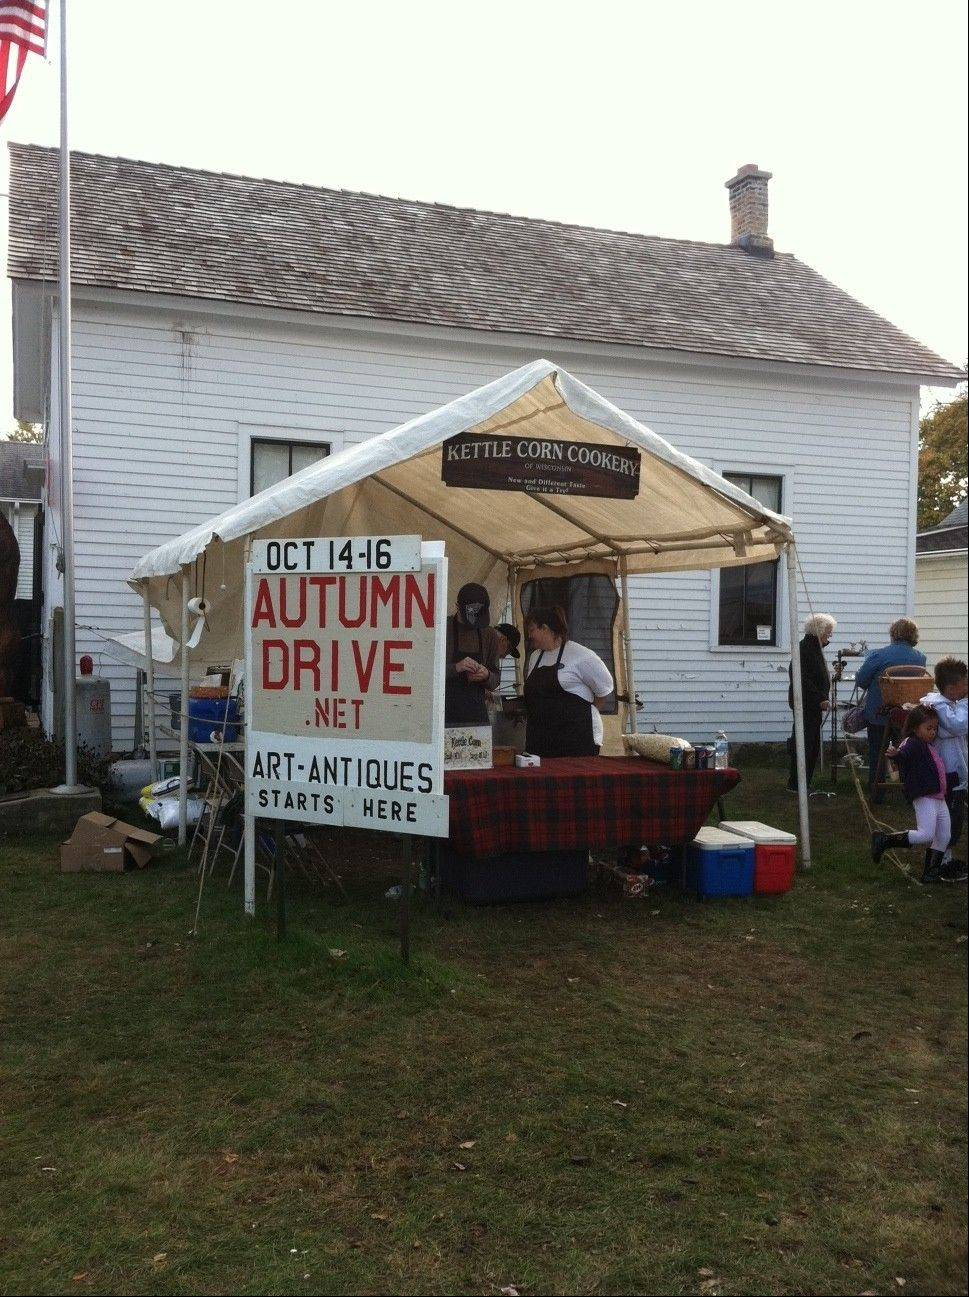 Visitors to the McHenry County Autumn Drive can pick up some kettle corn before heading into Perkins Hall to view historical exhibits.